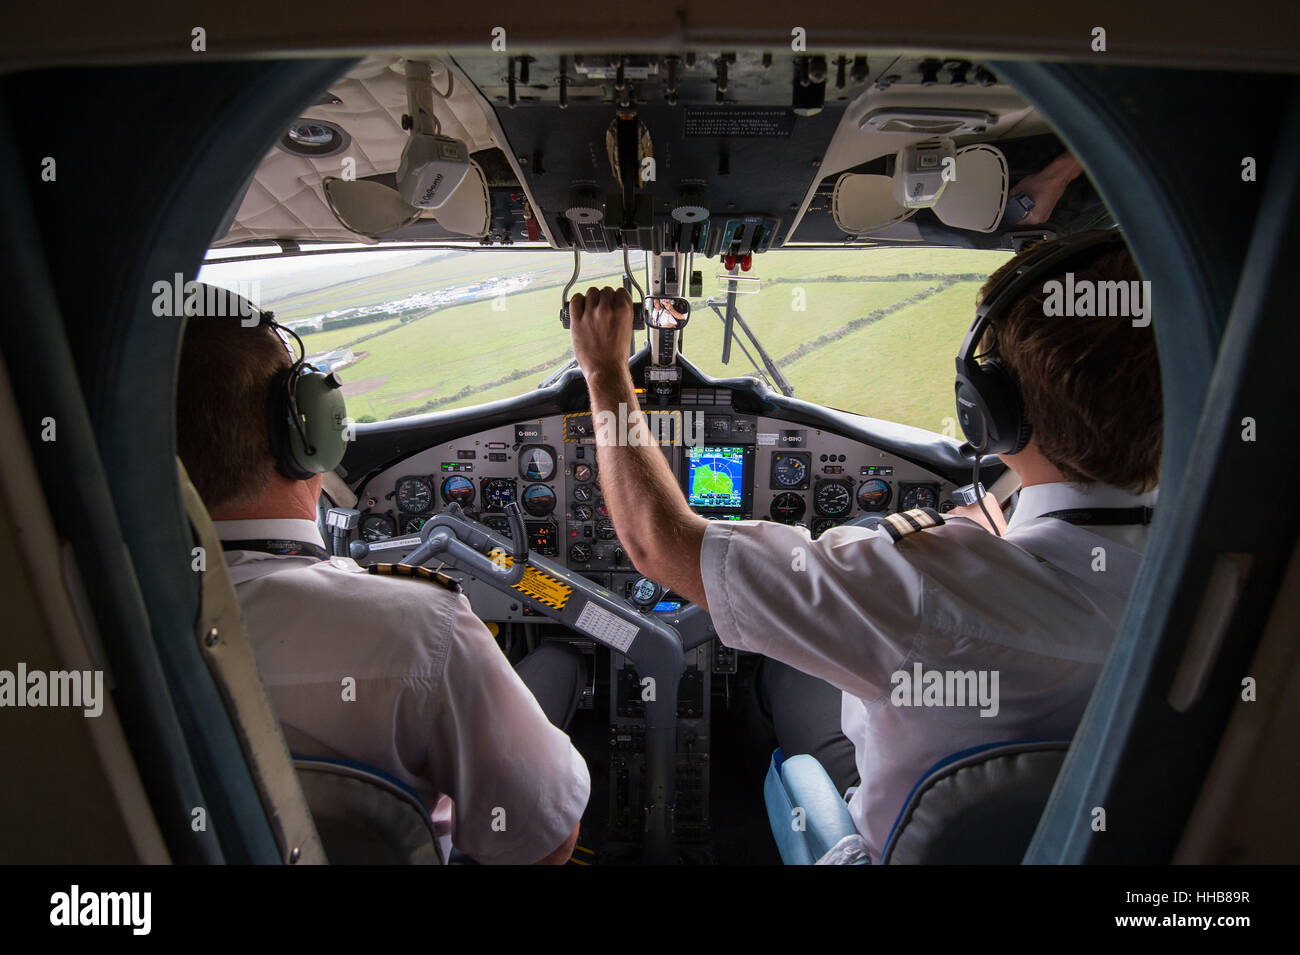 Aircraft Cockpit with pilots - Stock Image